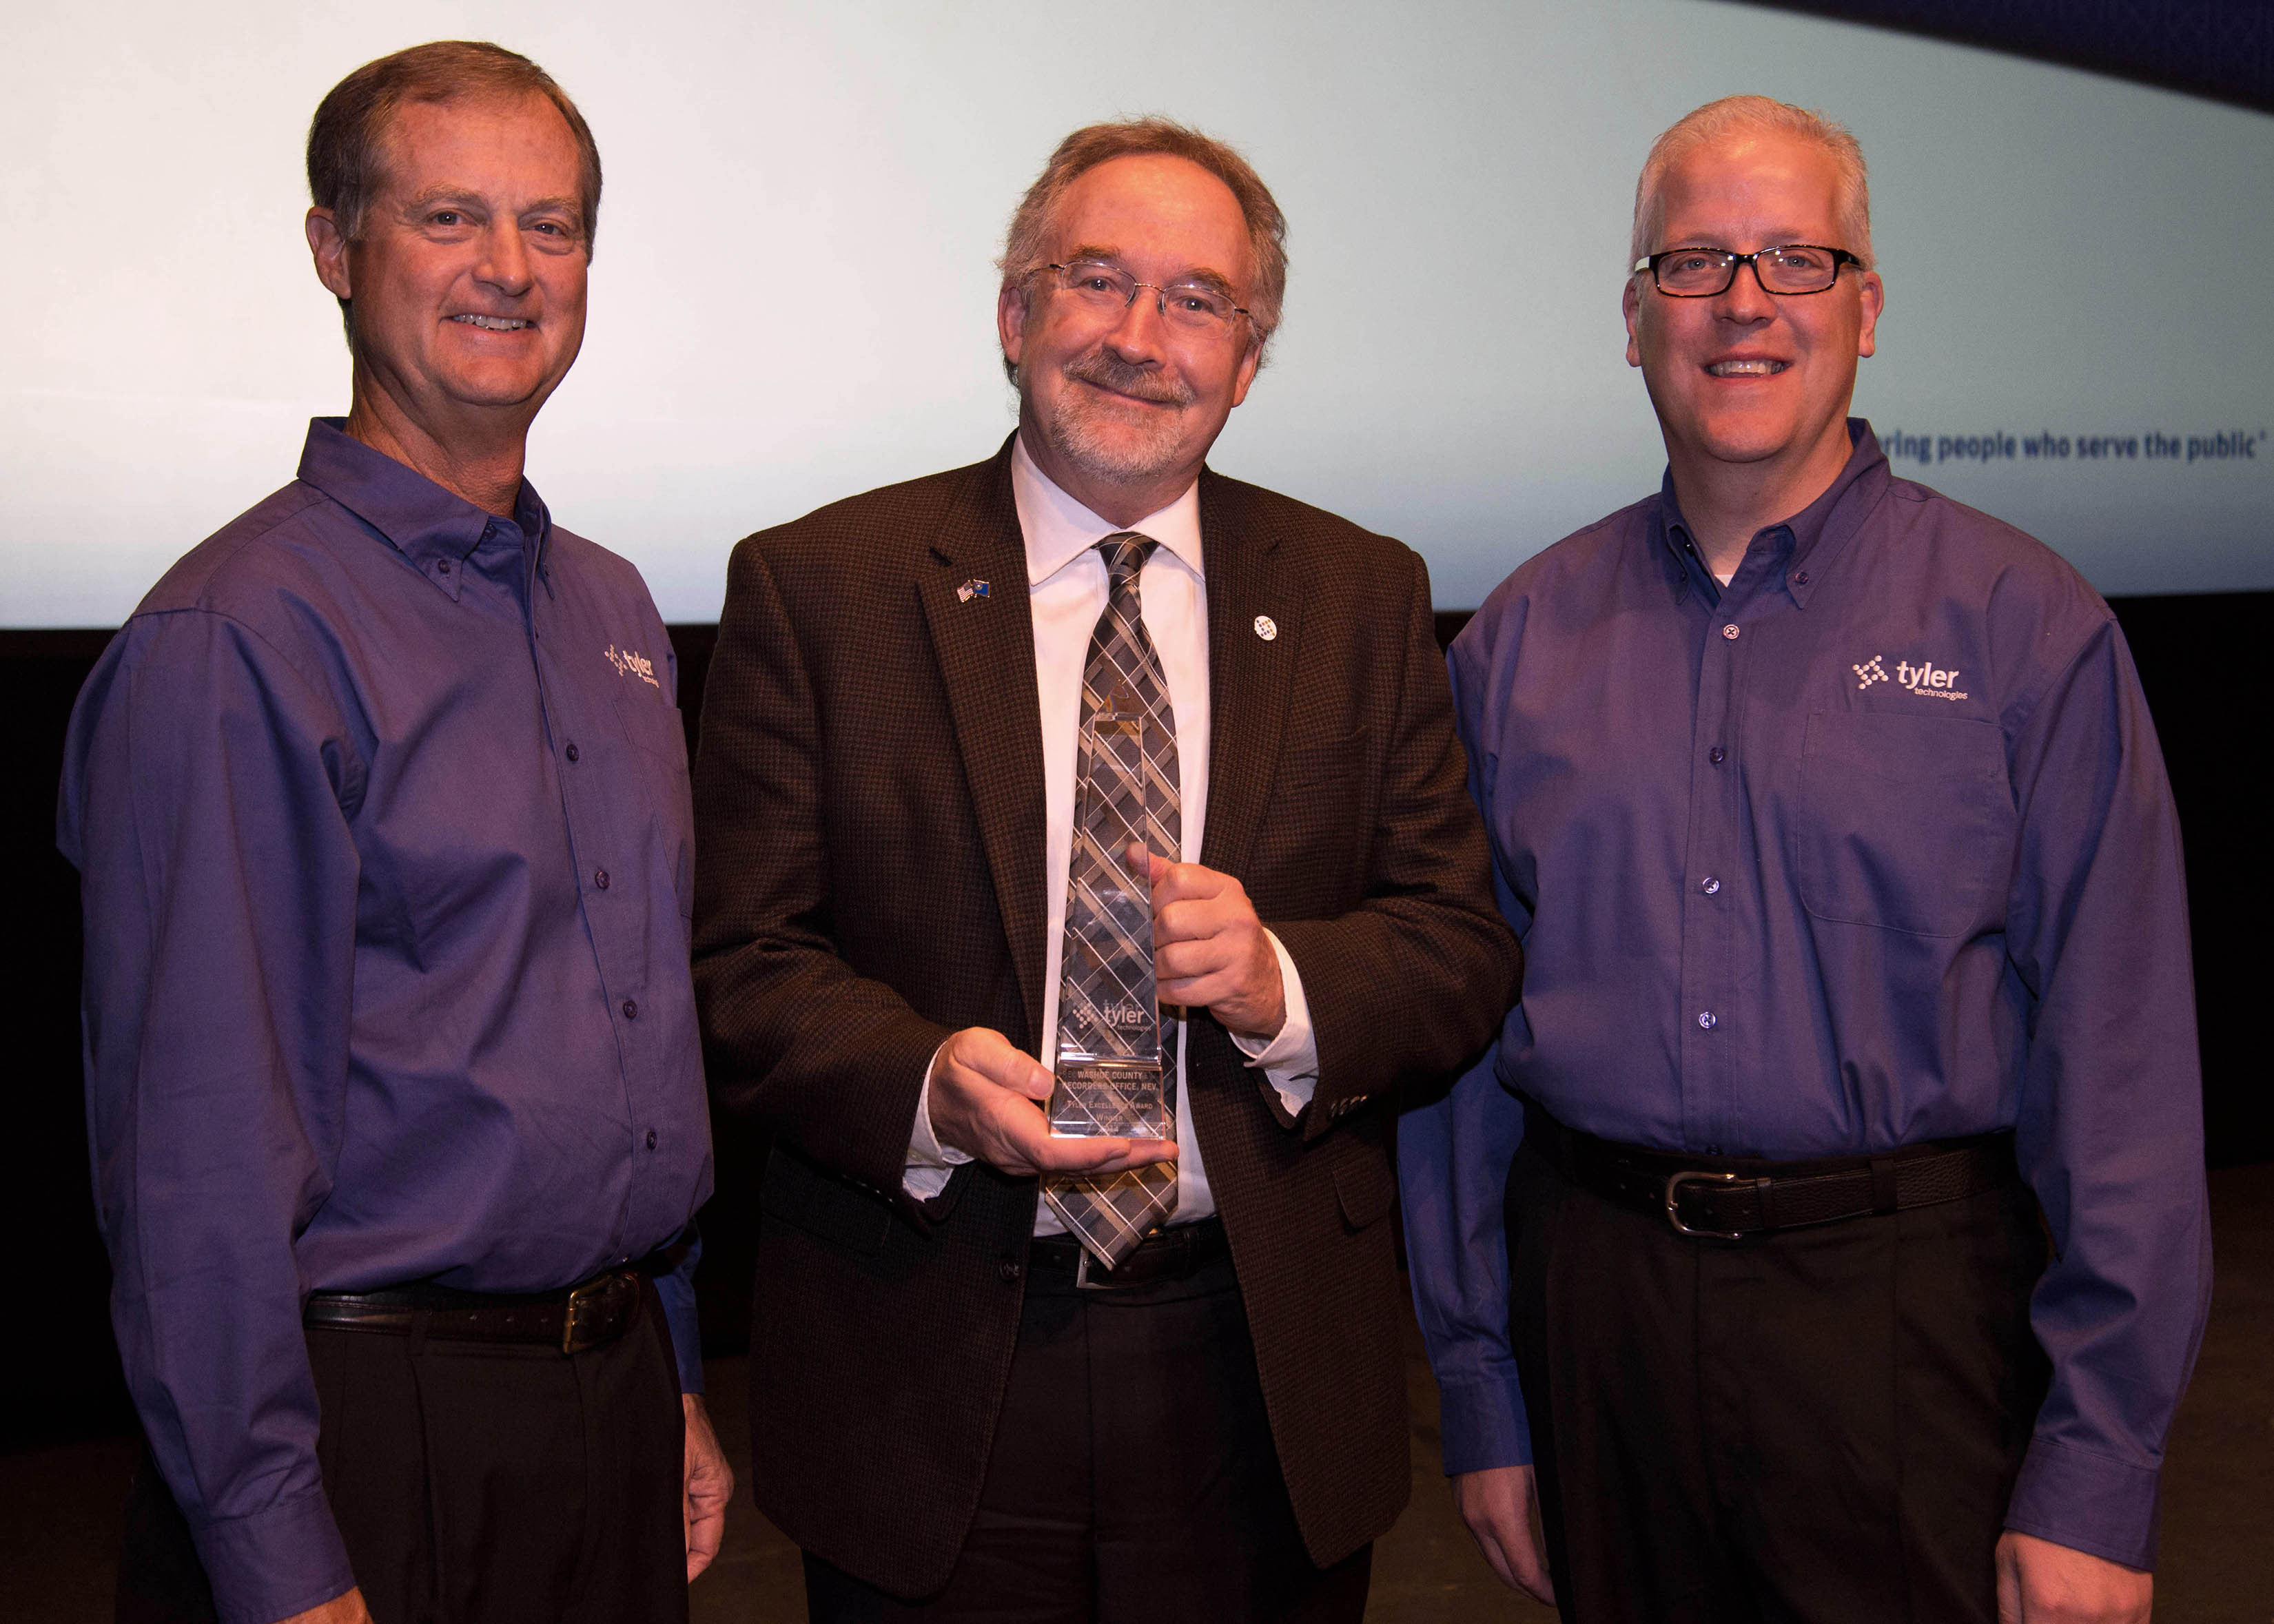 Steve Nieman, senior vice president of Tyler's Local Government Division, and Brett Cate, president of Tyler's Local Government Division, present a Tyler Excellence Award to Washoe County's Recorder Larry Burtness. (Photo: Business Wire)